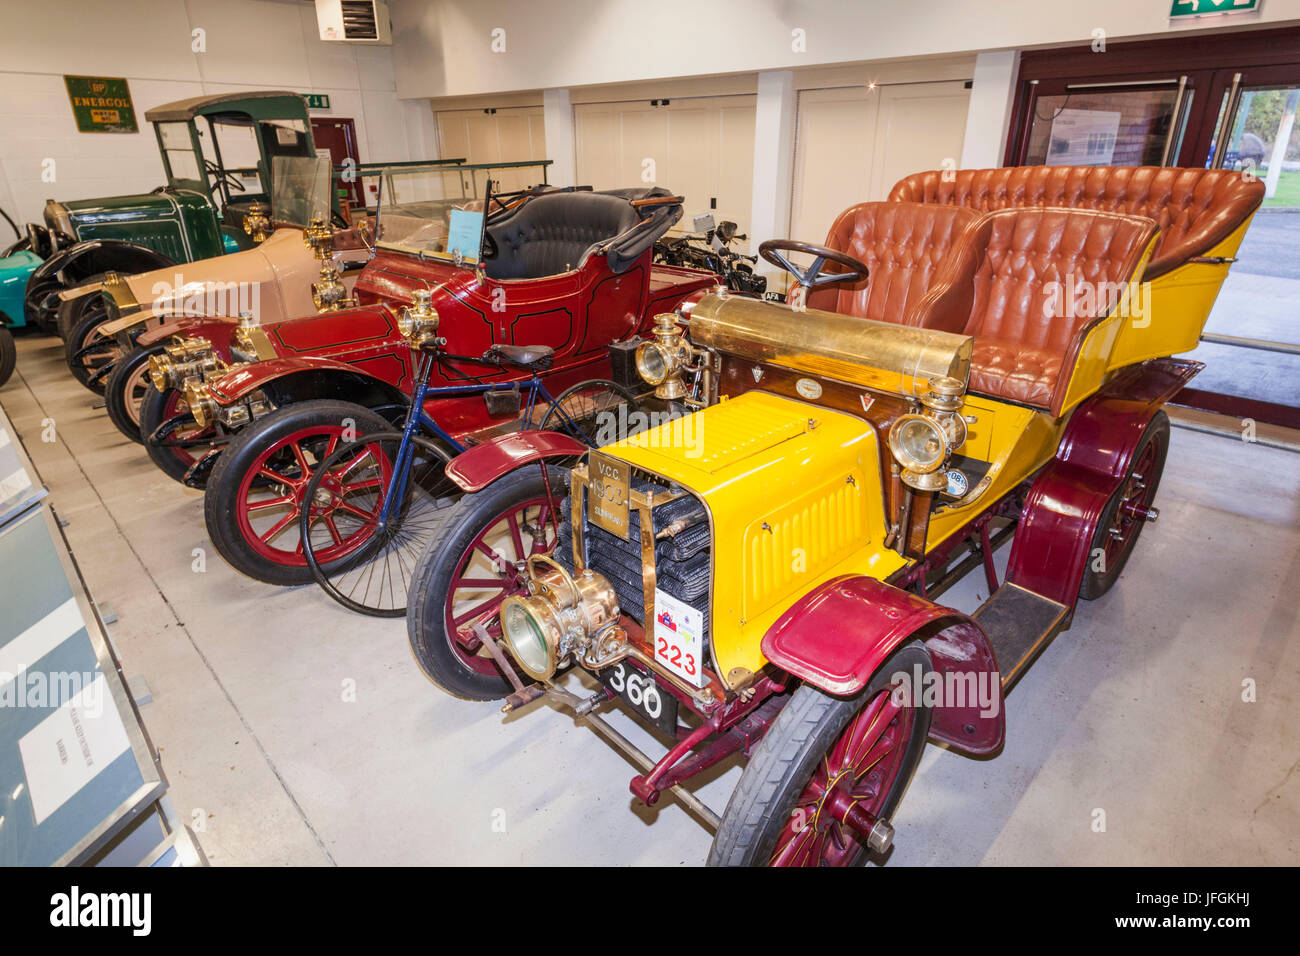 England, Birmingham, Dudley, The Black Country Living Museum, Vintage Car Collection - Stock Image